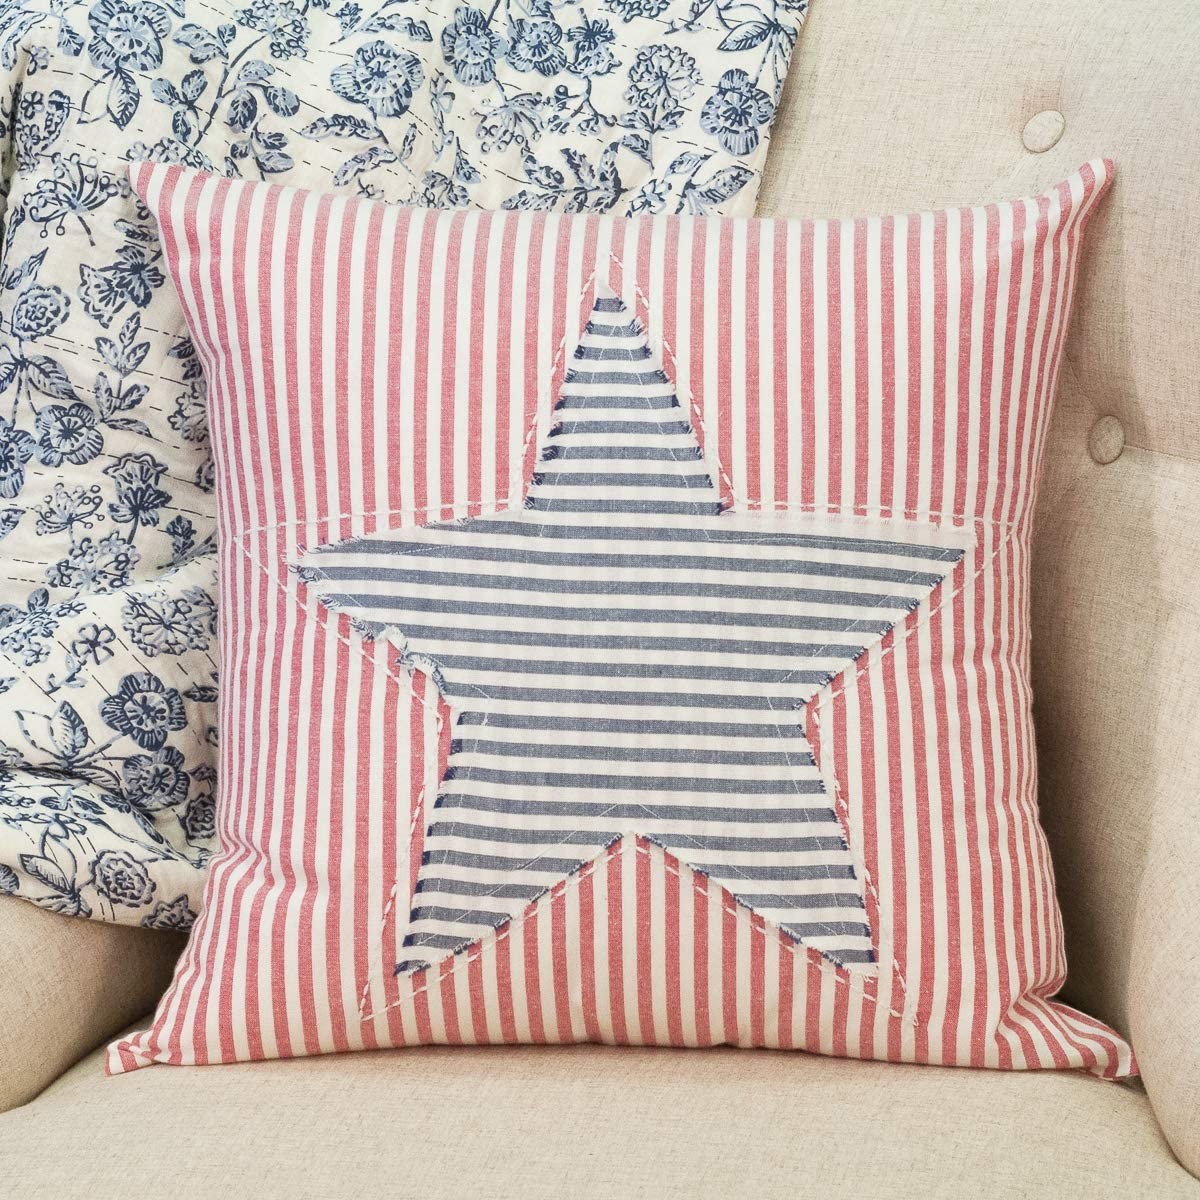 Piper Classics Stitched Star Ticking Stripe Pillow Cover, 18 x 18 , Red, White Blue, Patriotic Star, Country Farmhouse Americana D cor